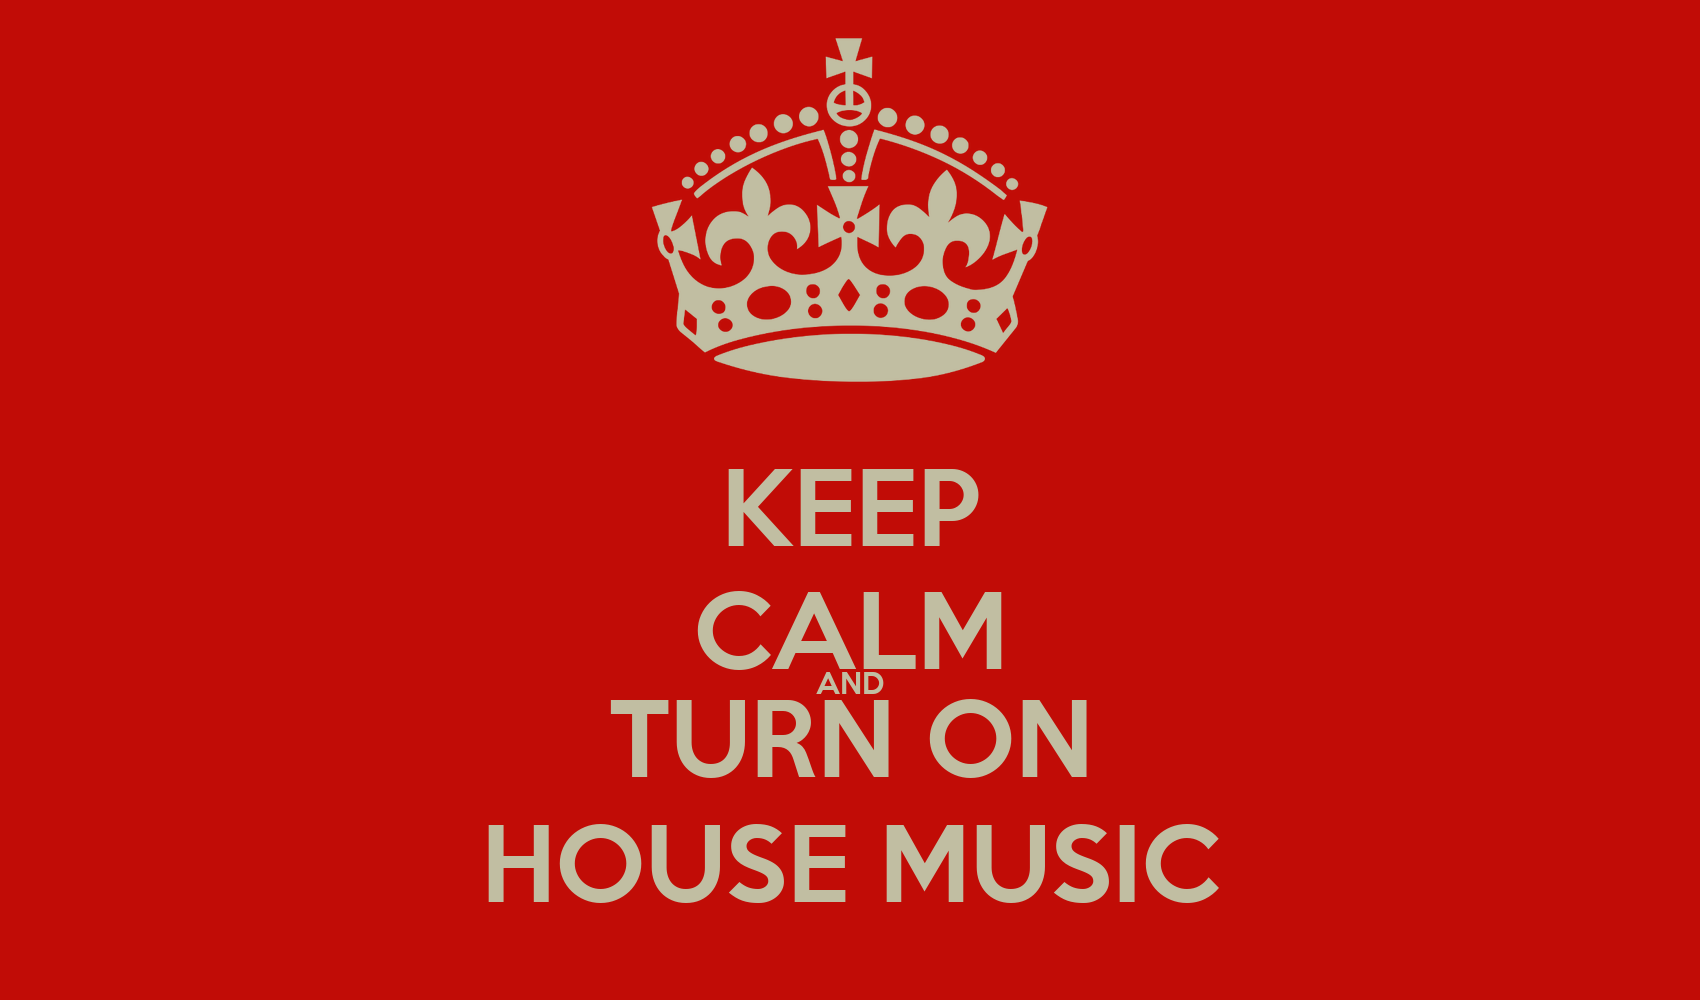 Keep calm and turn on house music keep calm and carry on for Uk house music